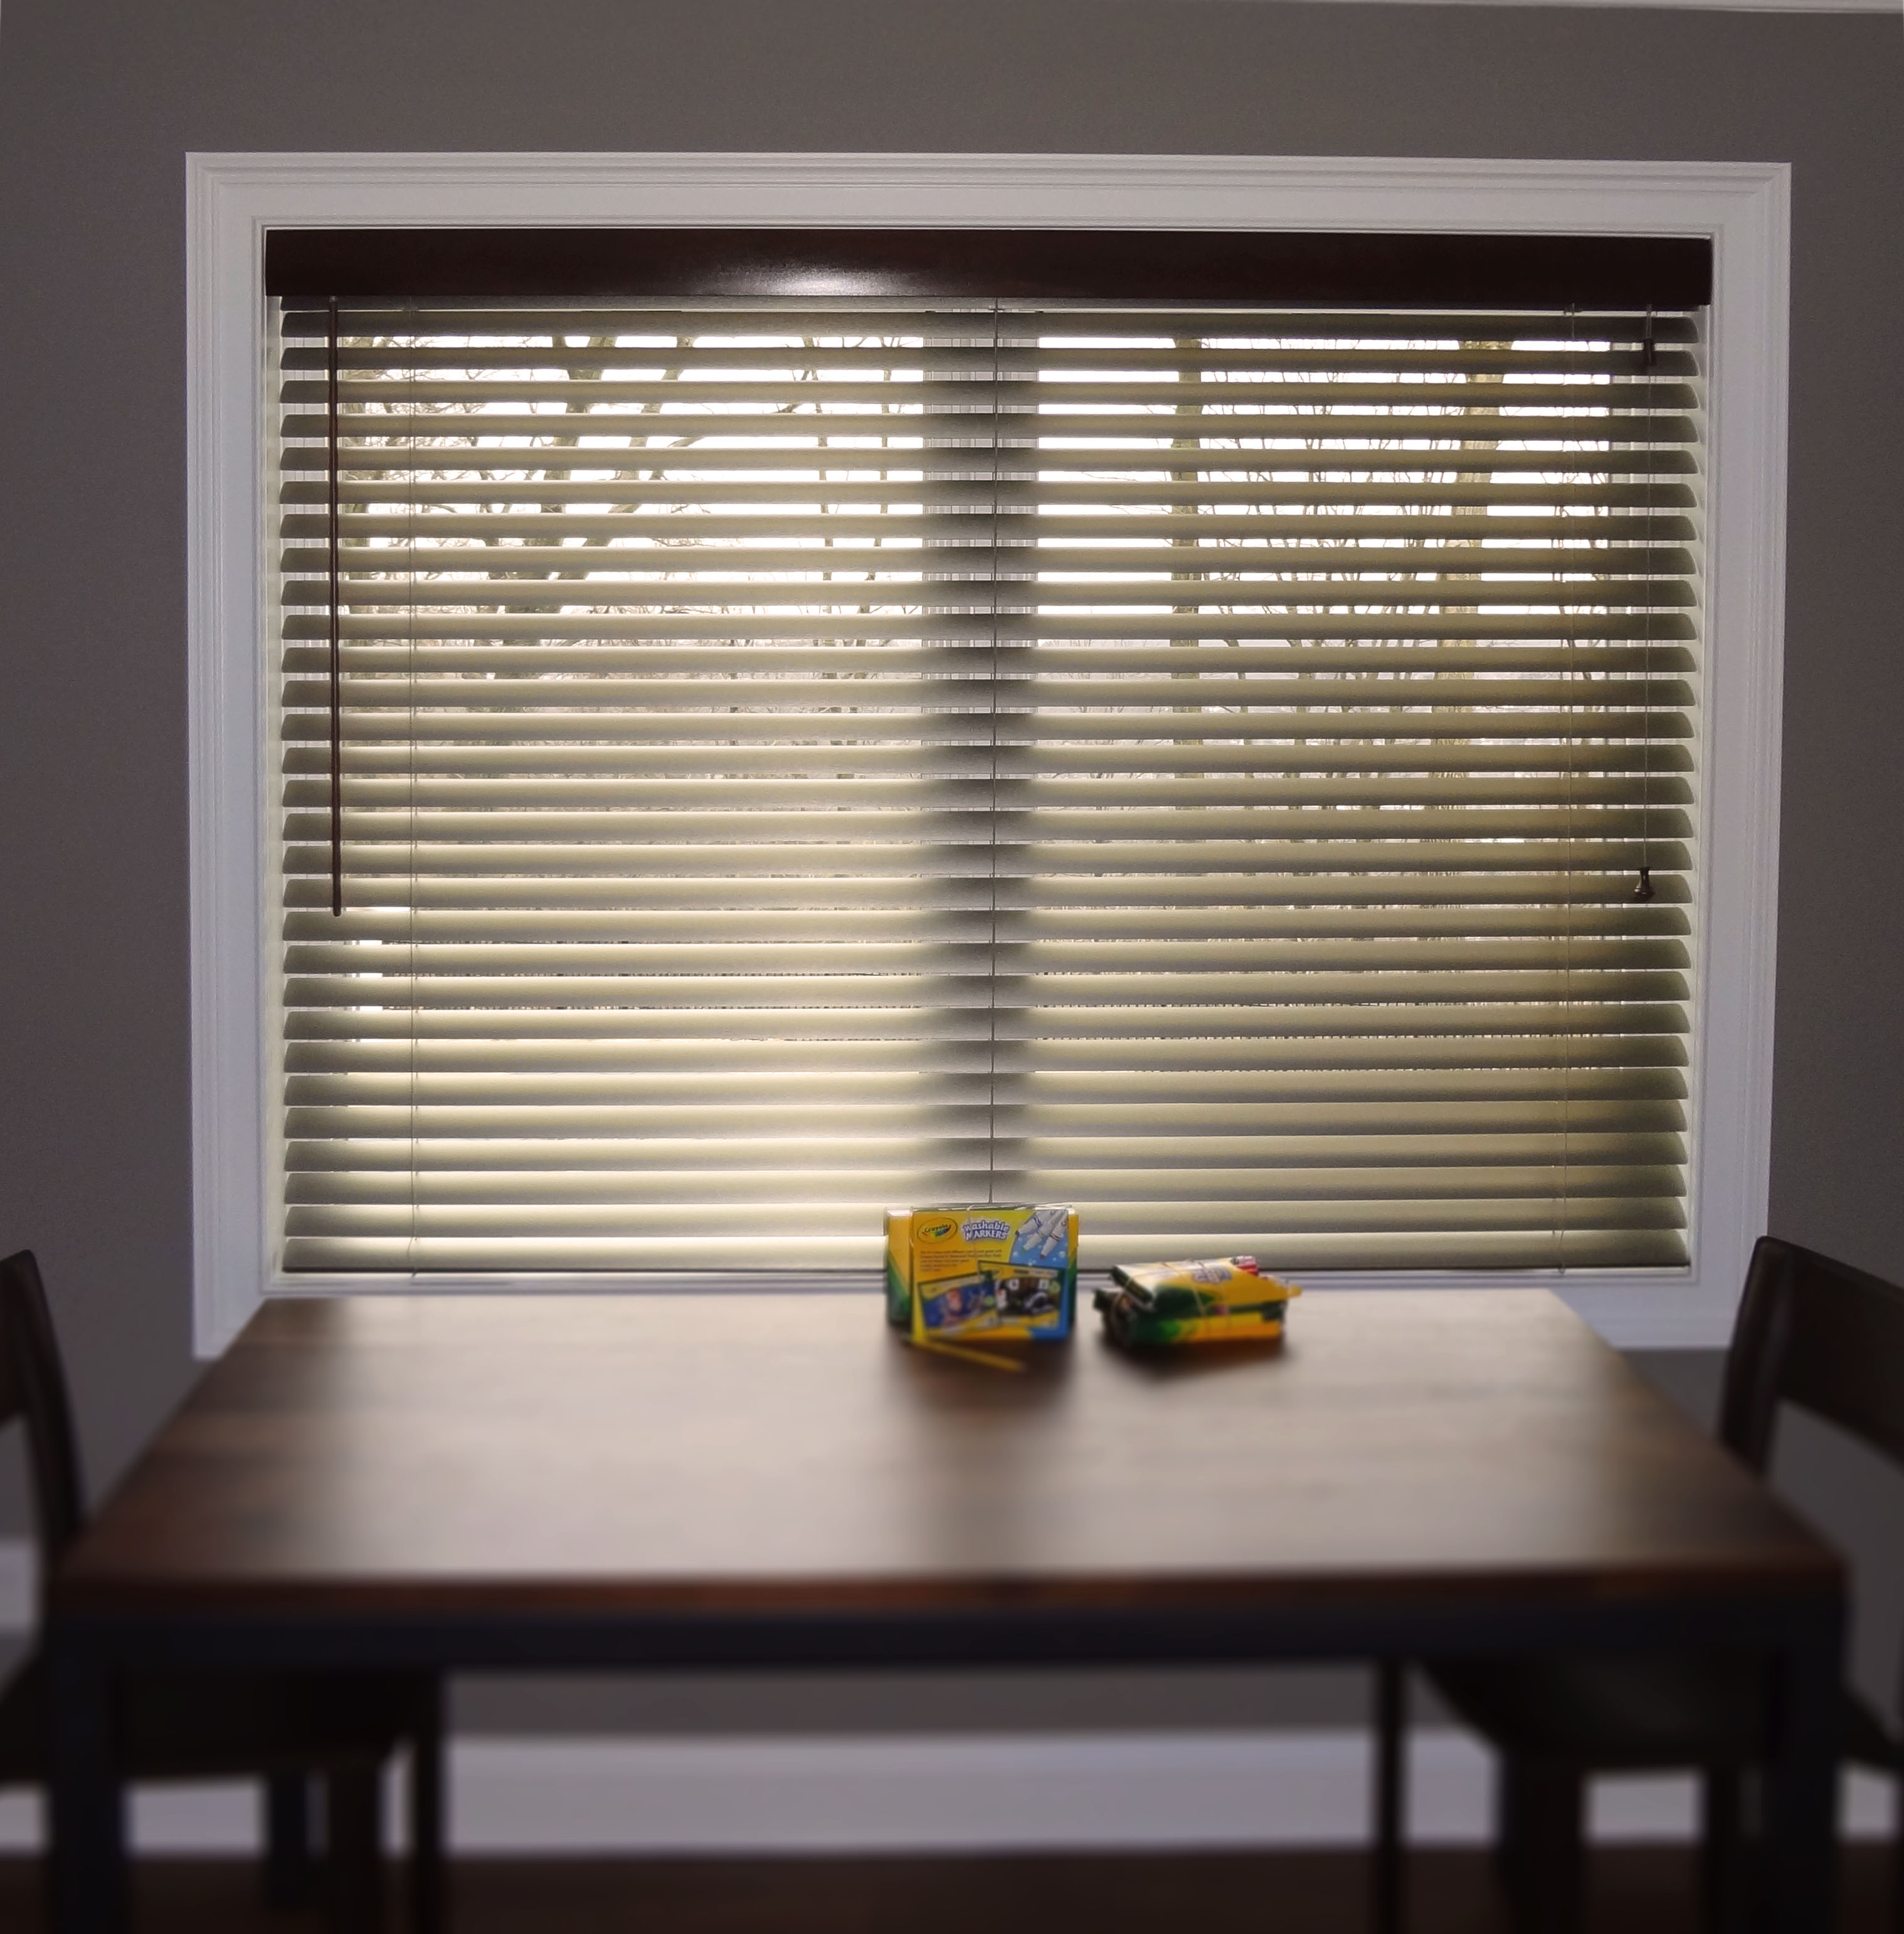 sonic vignette ultra do cleaning we system blinds douglas with tiered plus blind hunter